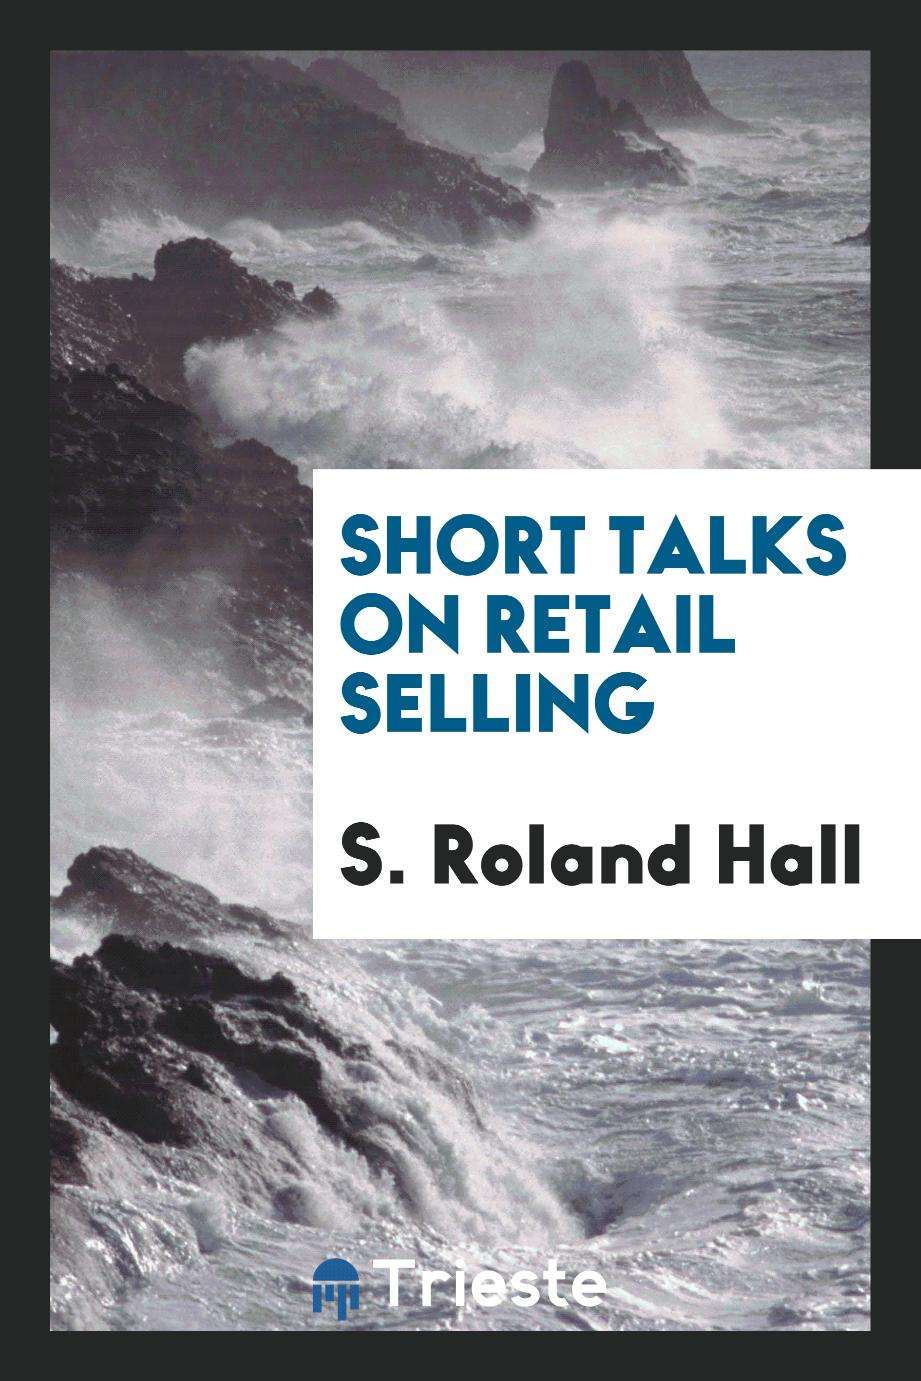 S. Roland Hall - Short talks on retail selling